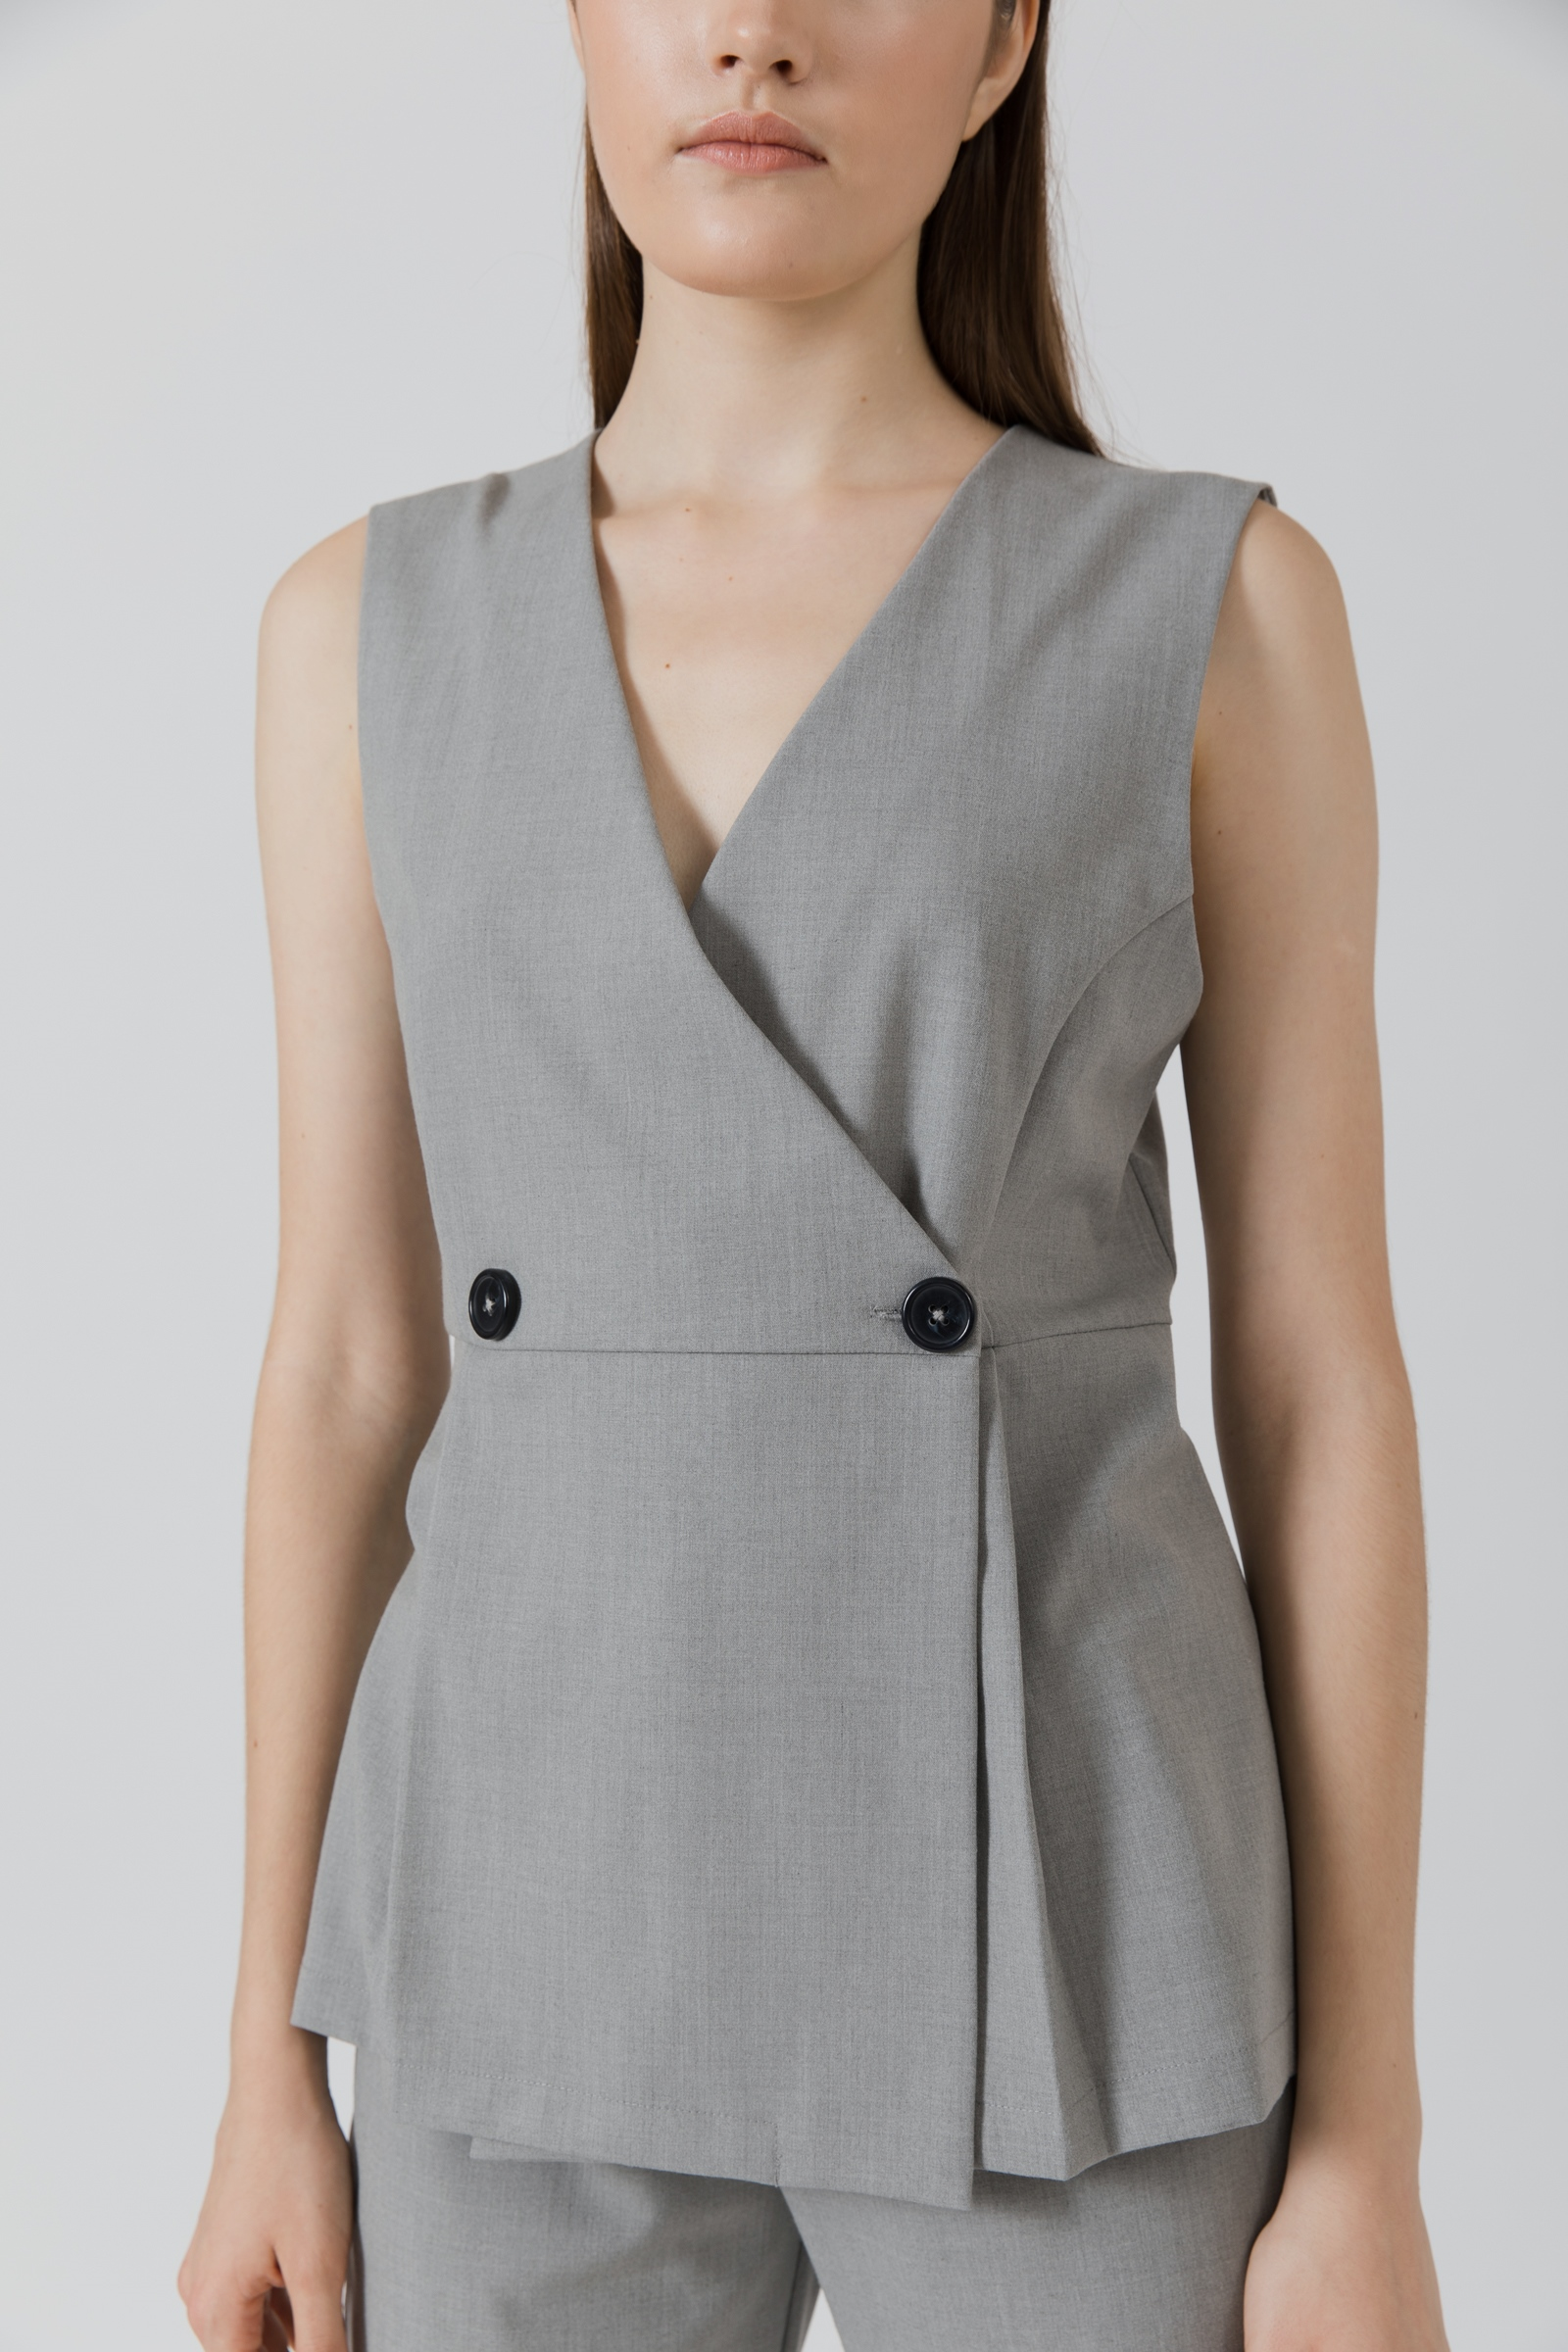 Picture of Finley Vest MistyGrey